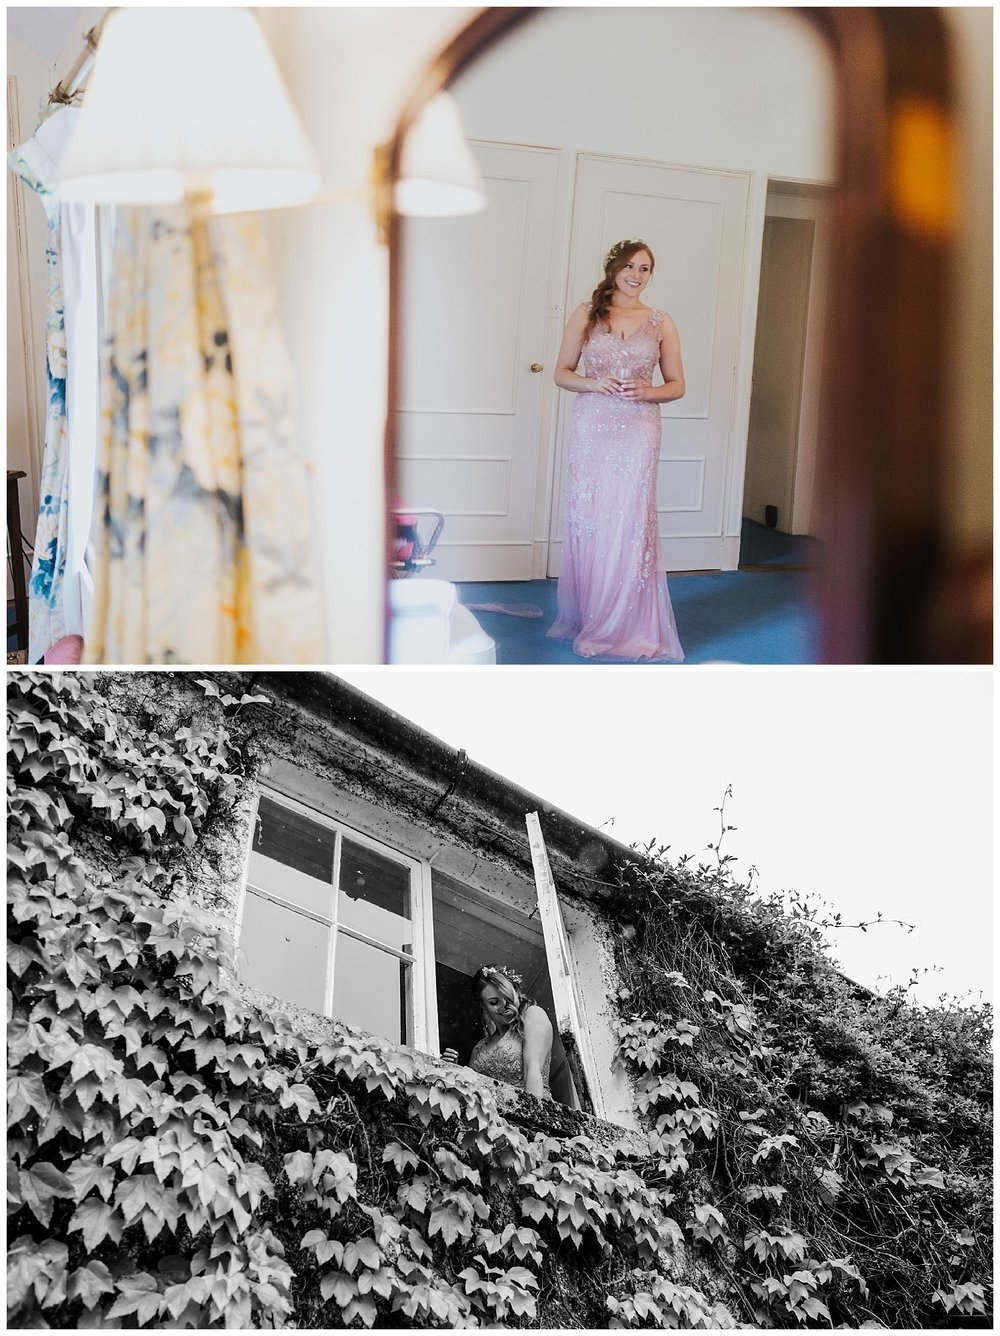 p+g_rathsallagh_house_wedding_livia_figueiredo_303.jpg